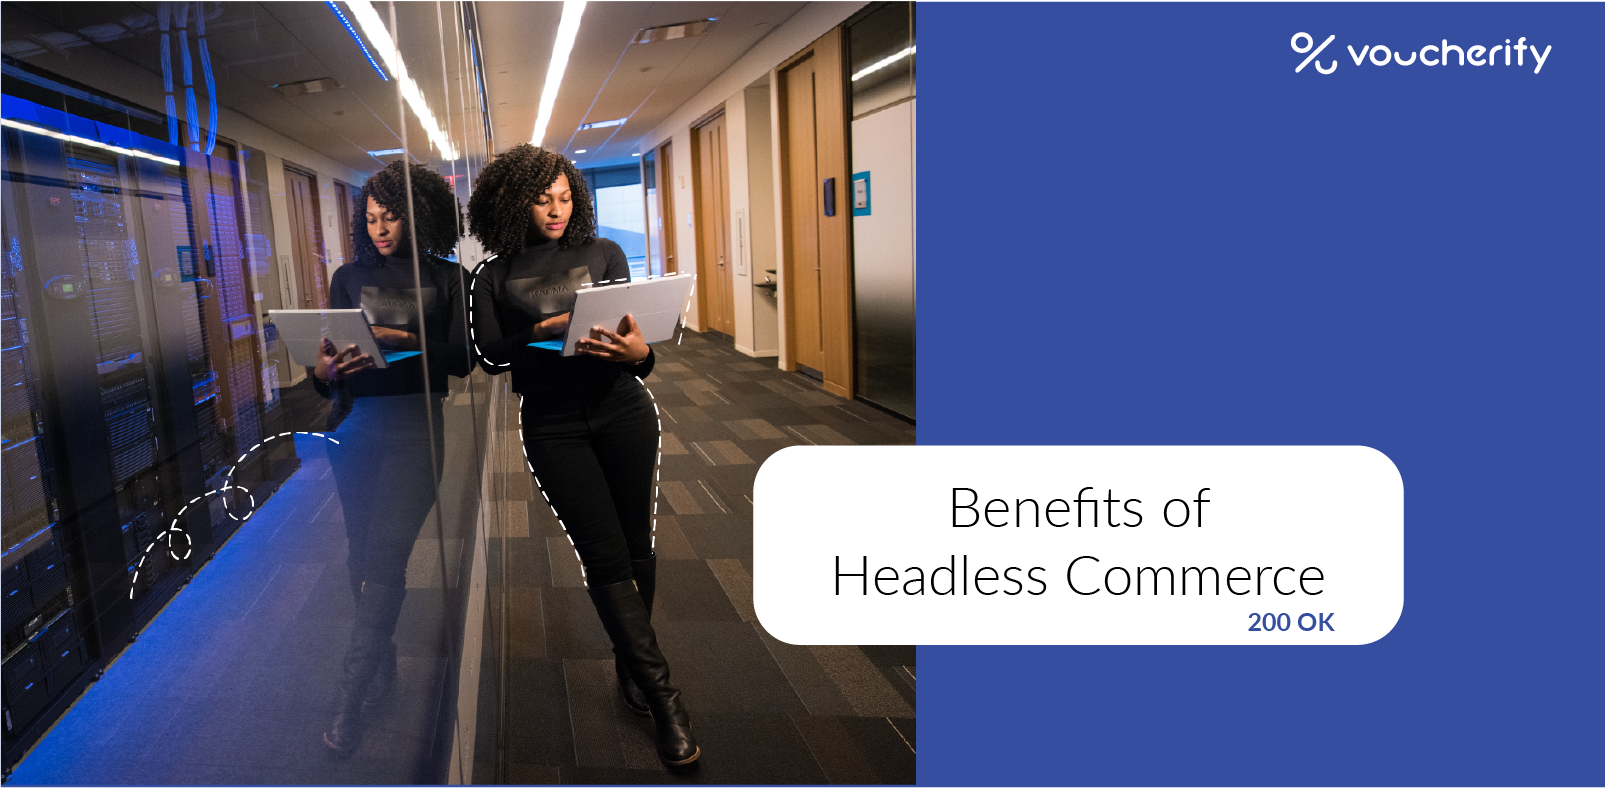 The unseen complexity — the benefits of headless commerce